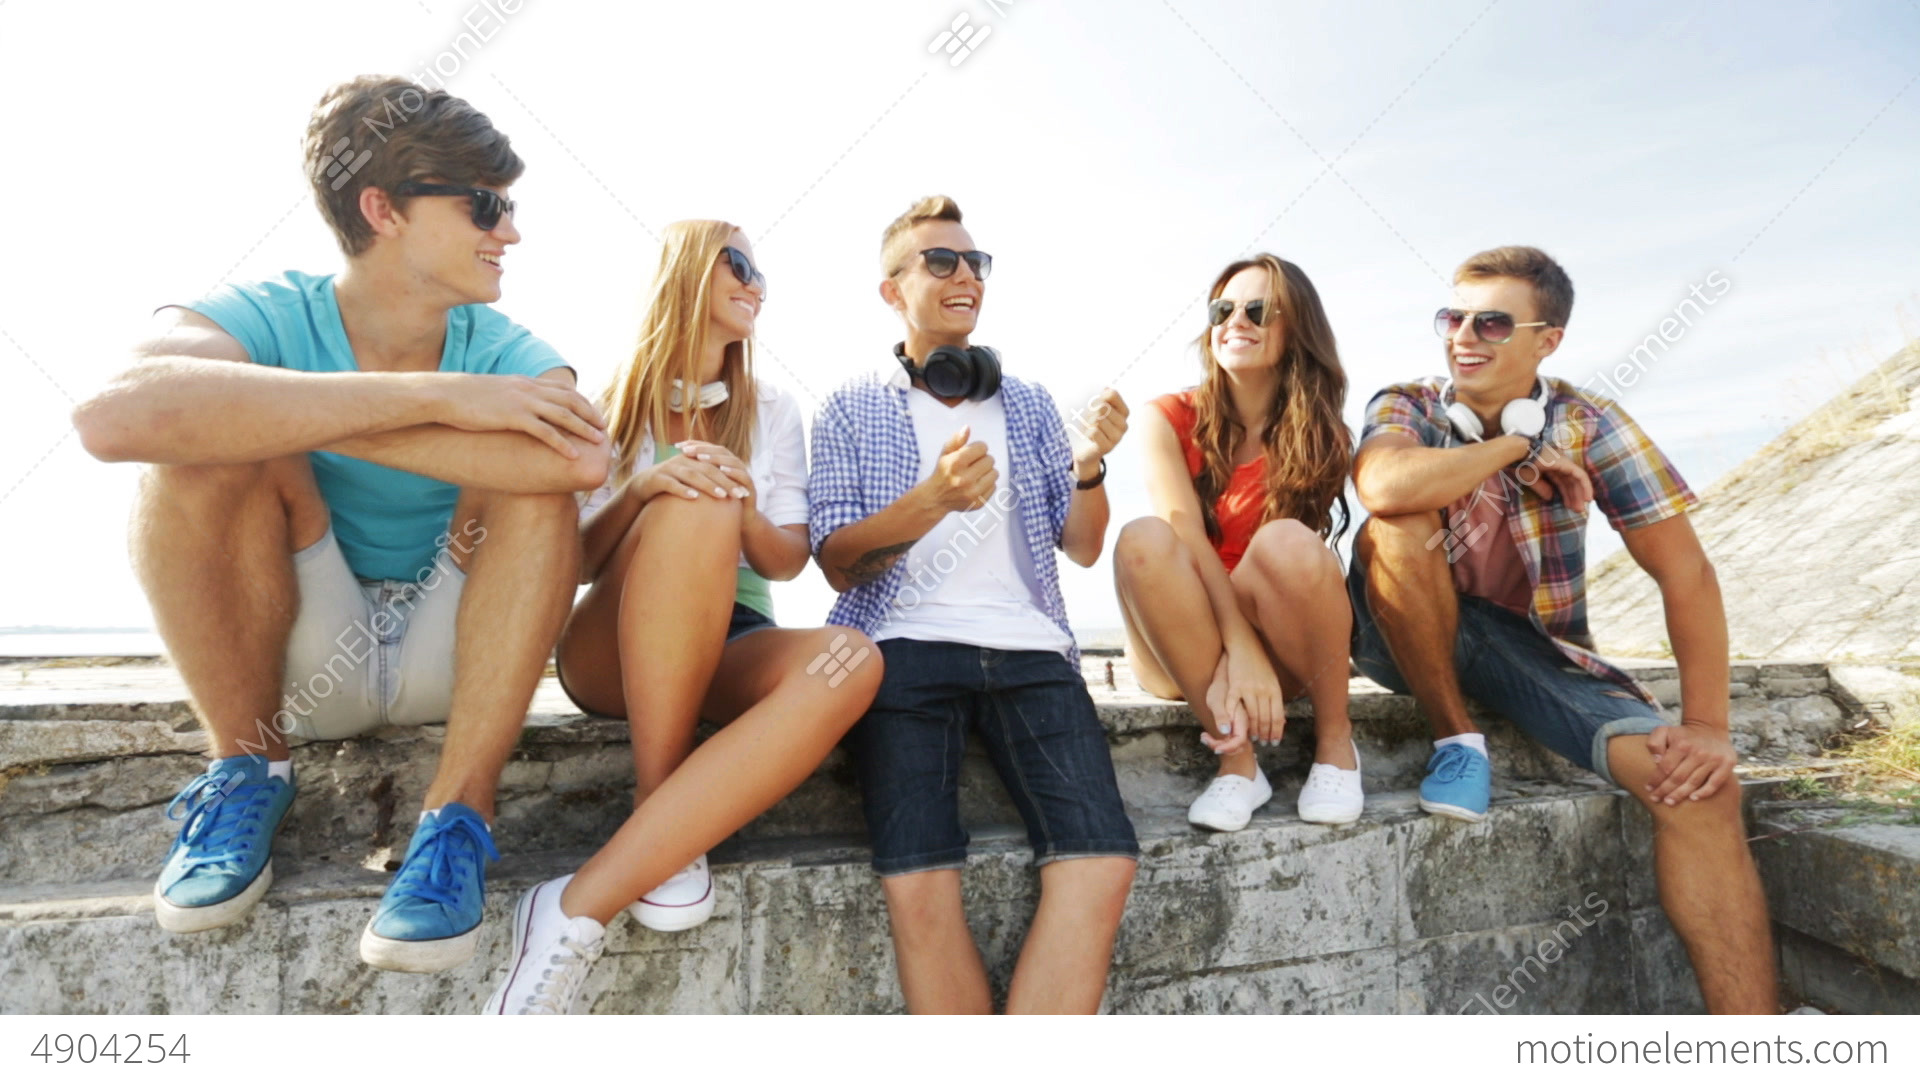 People hanging out